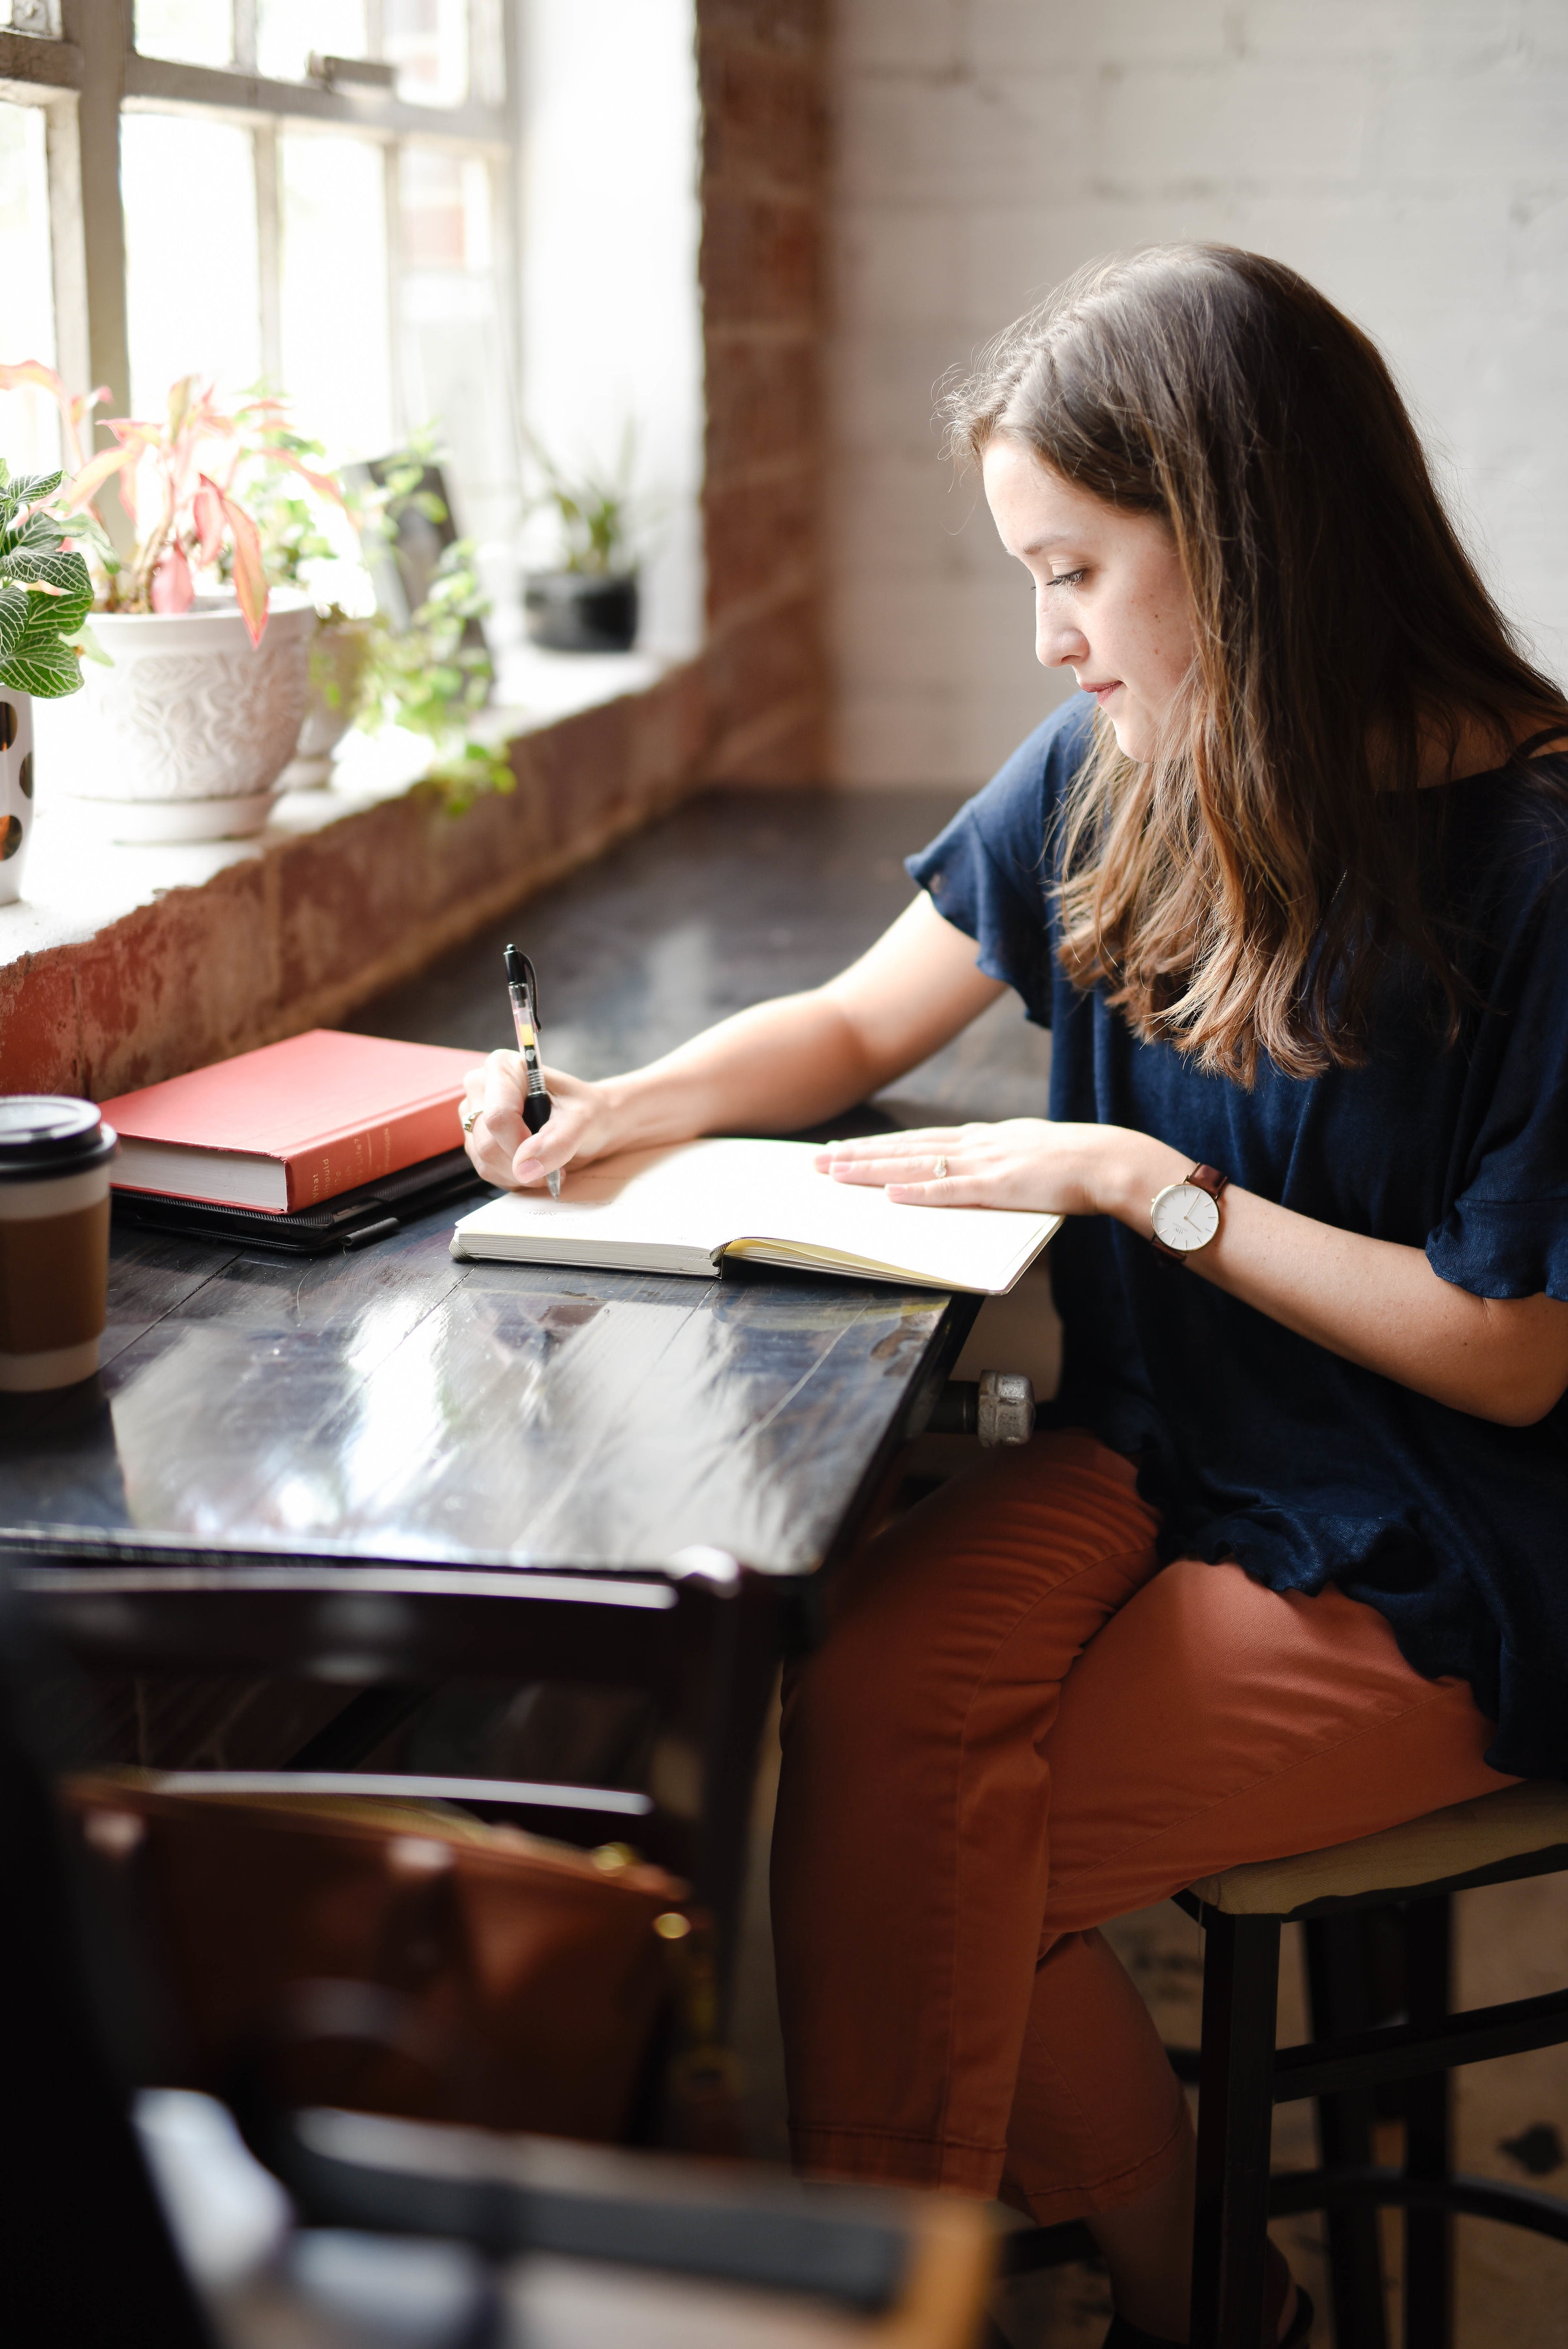 Freelance writing is one of the best low stress jobs for anxiety